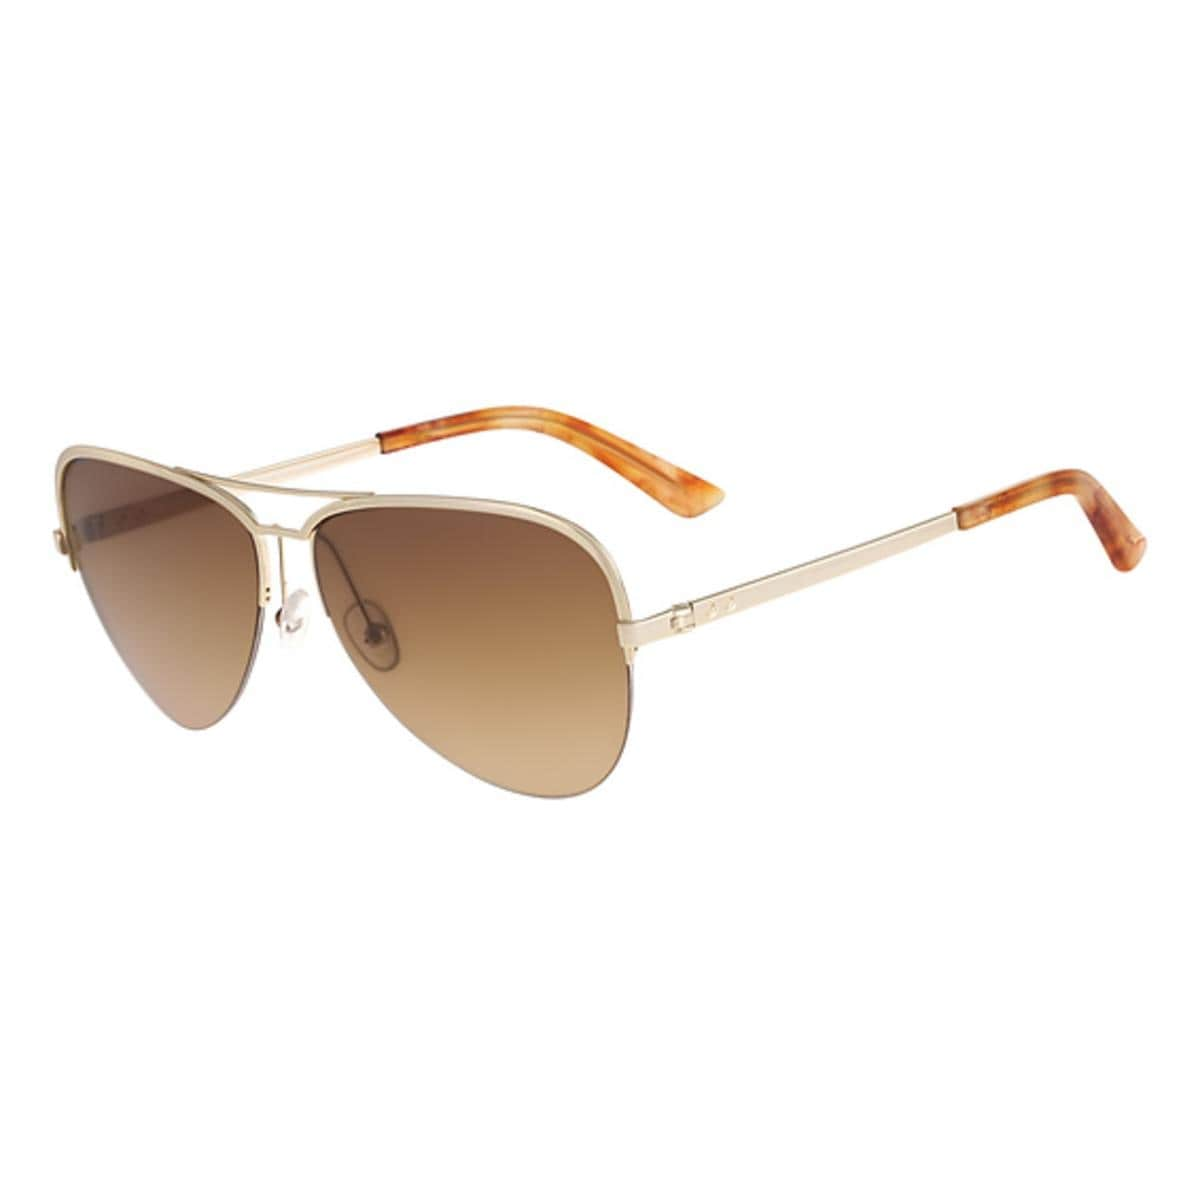 e743ab8e125a Shop Calvin Klein Collection Womens Aviator Sunglasses Semi Rimless  Oversized - Free Shipping On Orders Over $45 - Overstock - 15411844